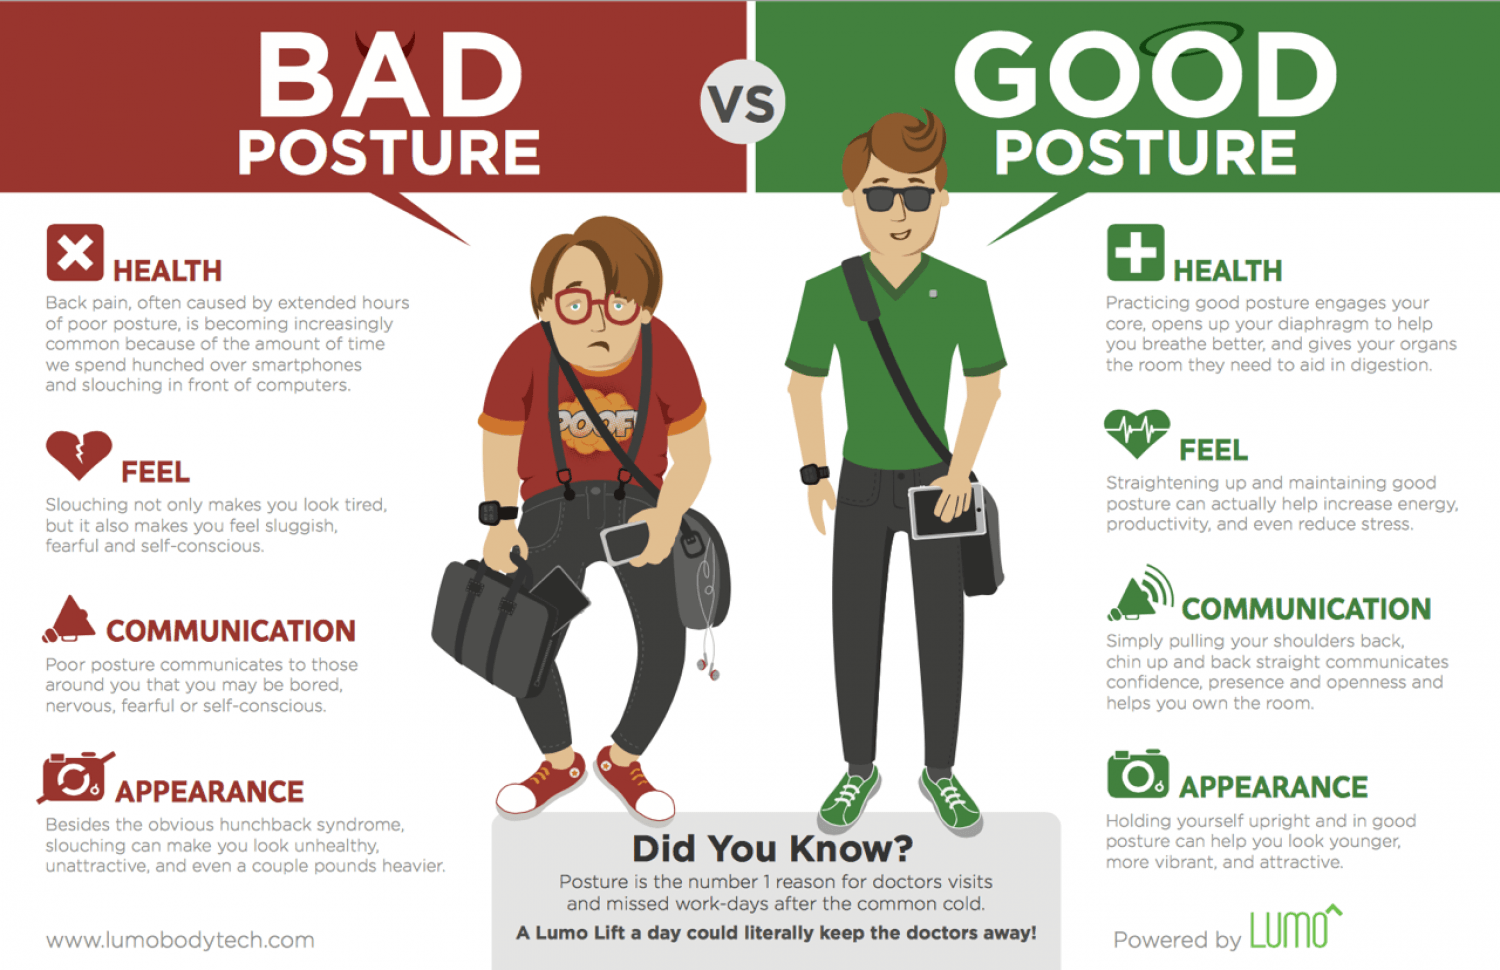 bad posture vs good posture